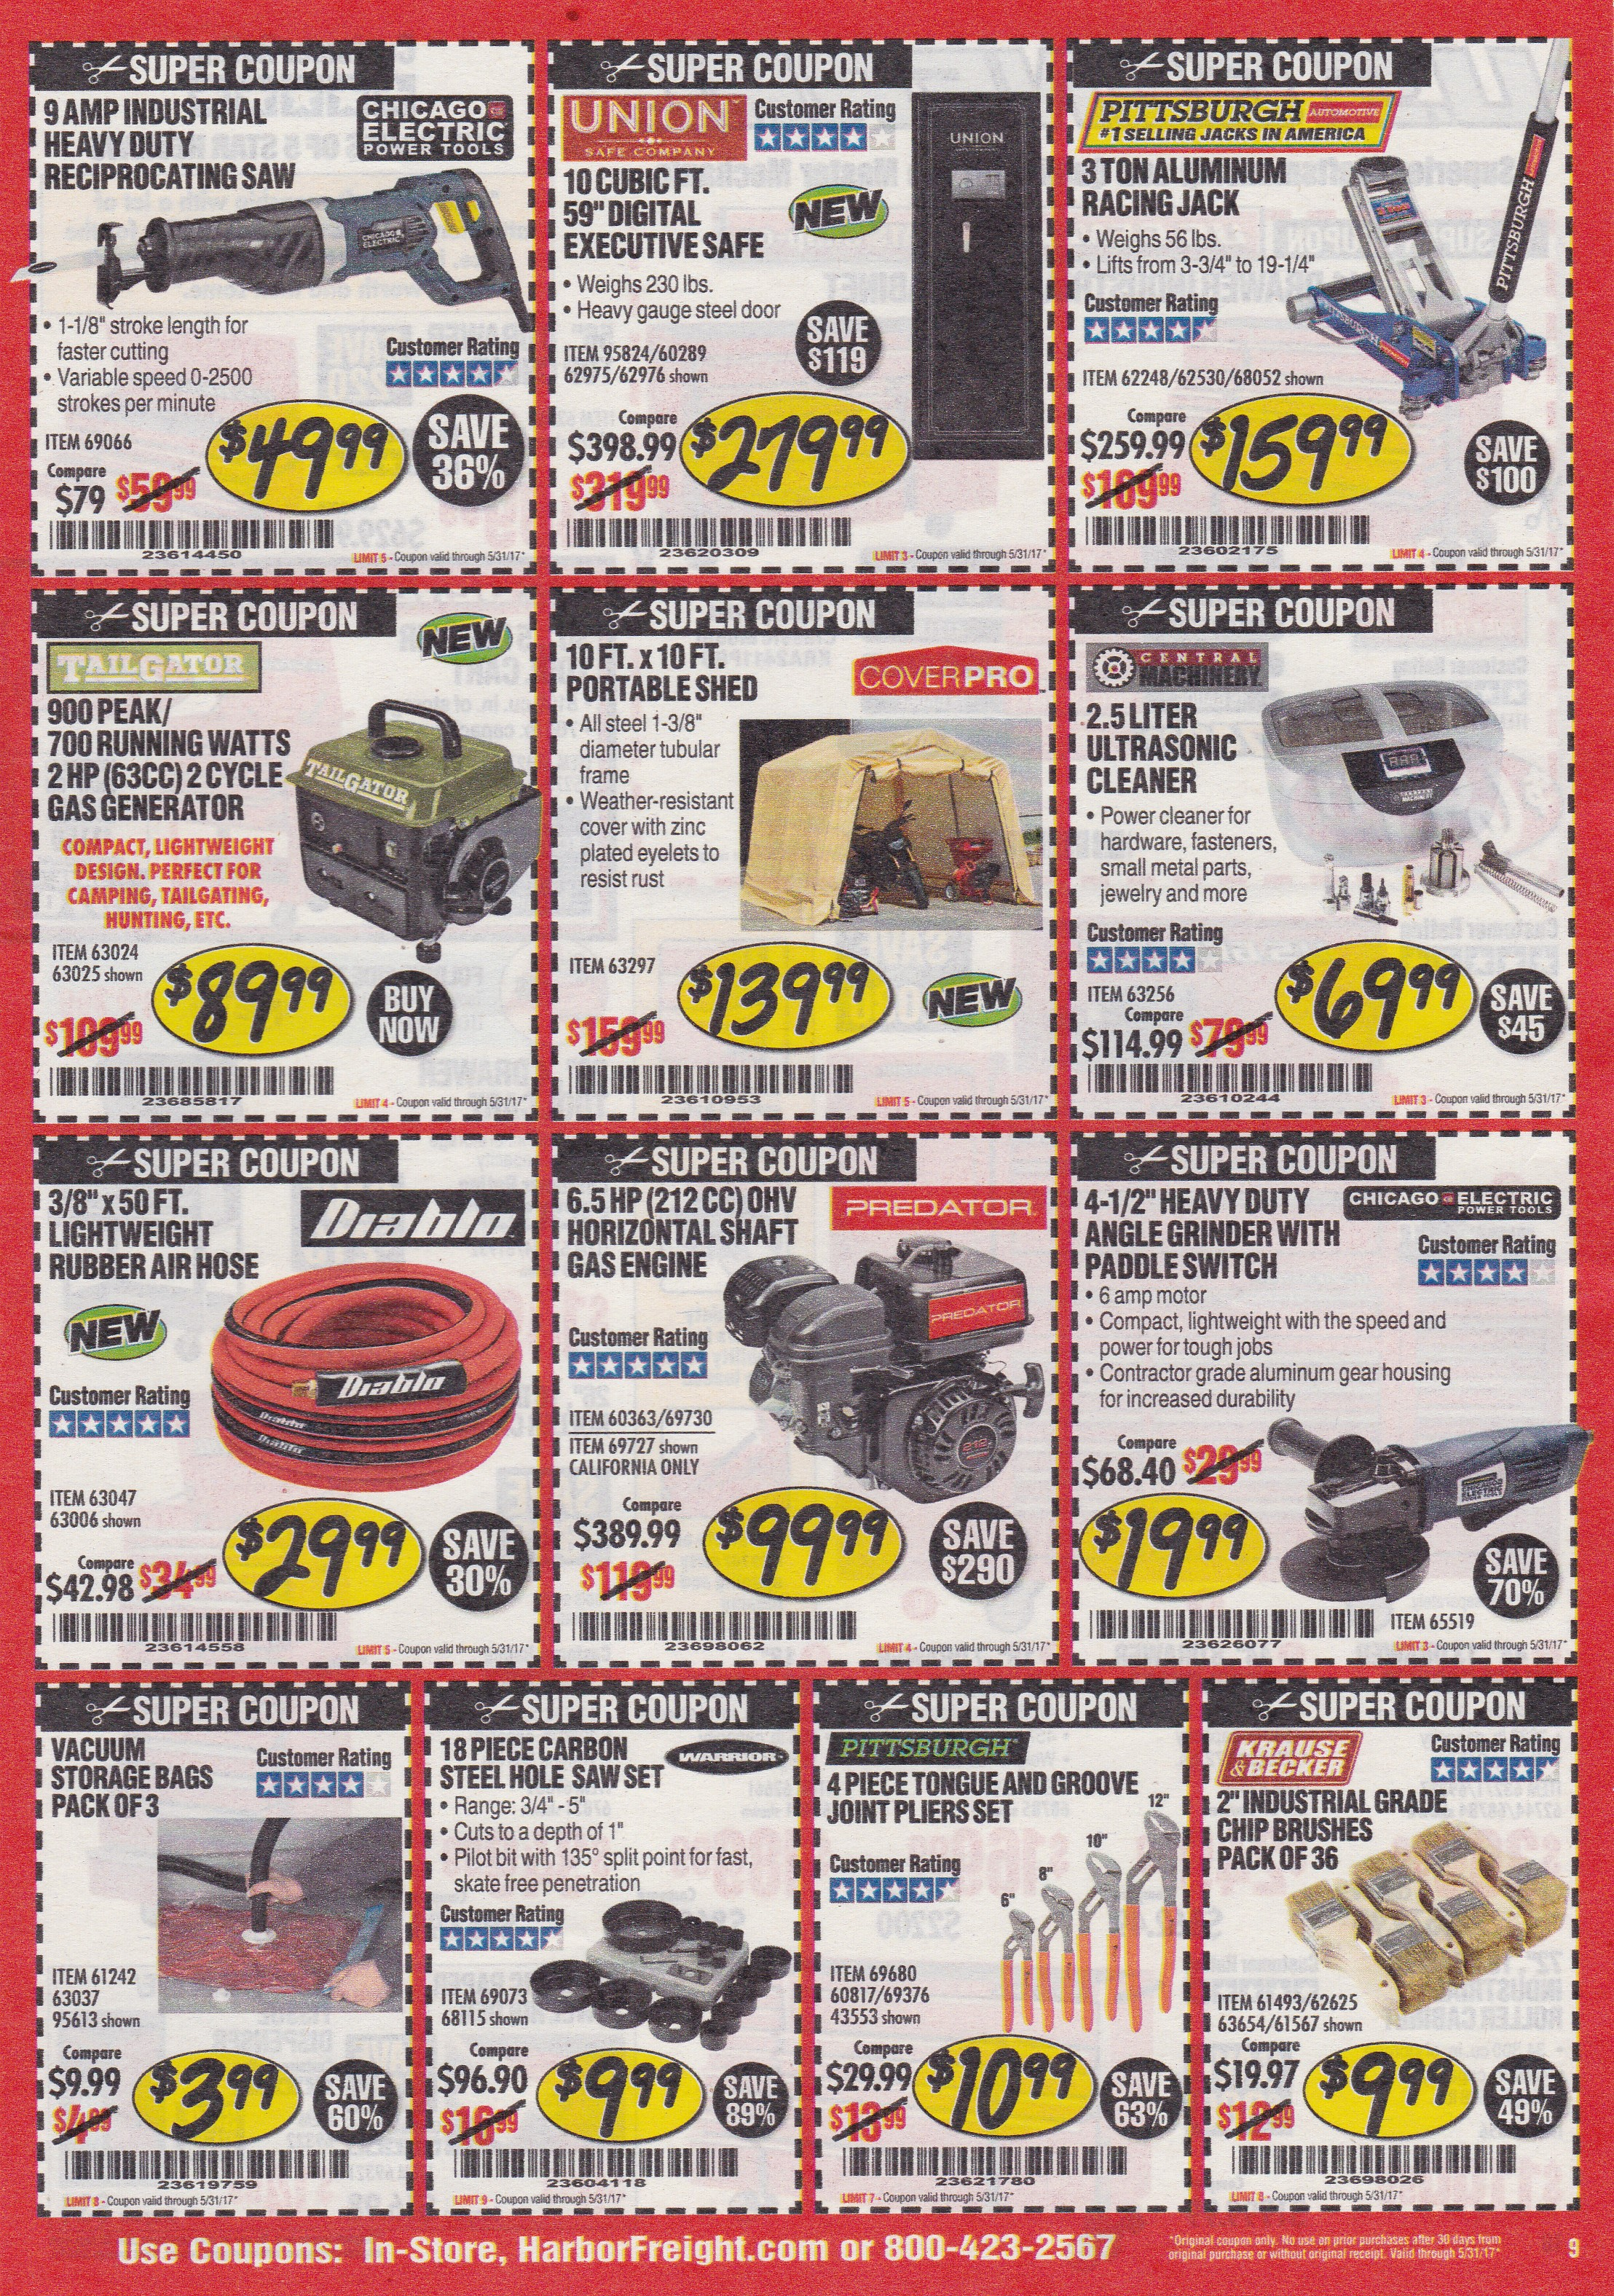 Over 100 harbor freight coupons expiring 53117 struggleville didnt find the coupon you needed use our harbor freight custom search tool to find what you are looking for fandeluxe Images